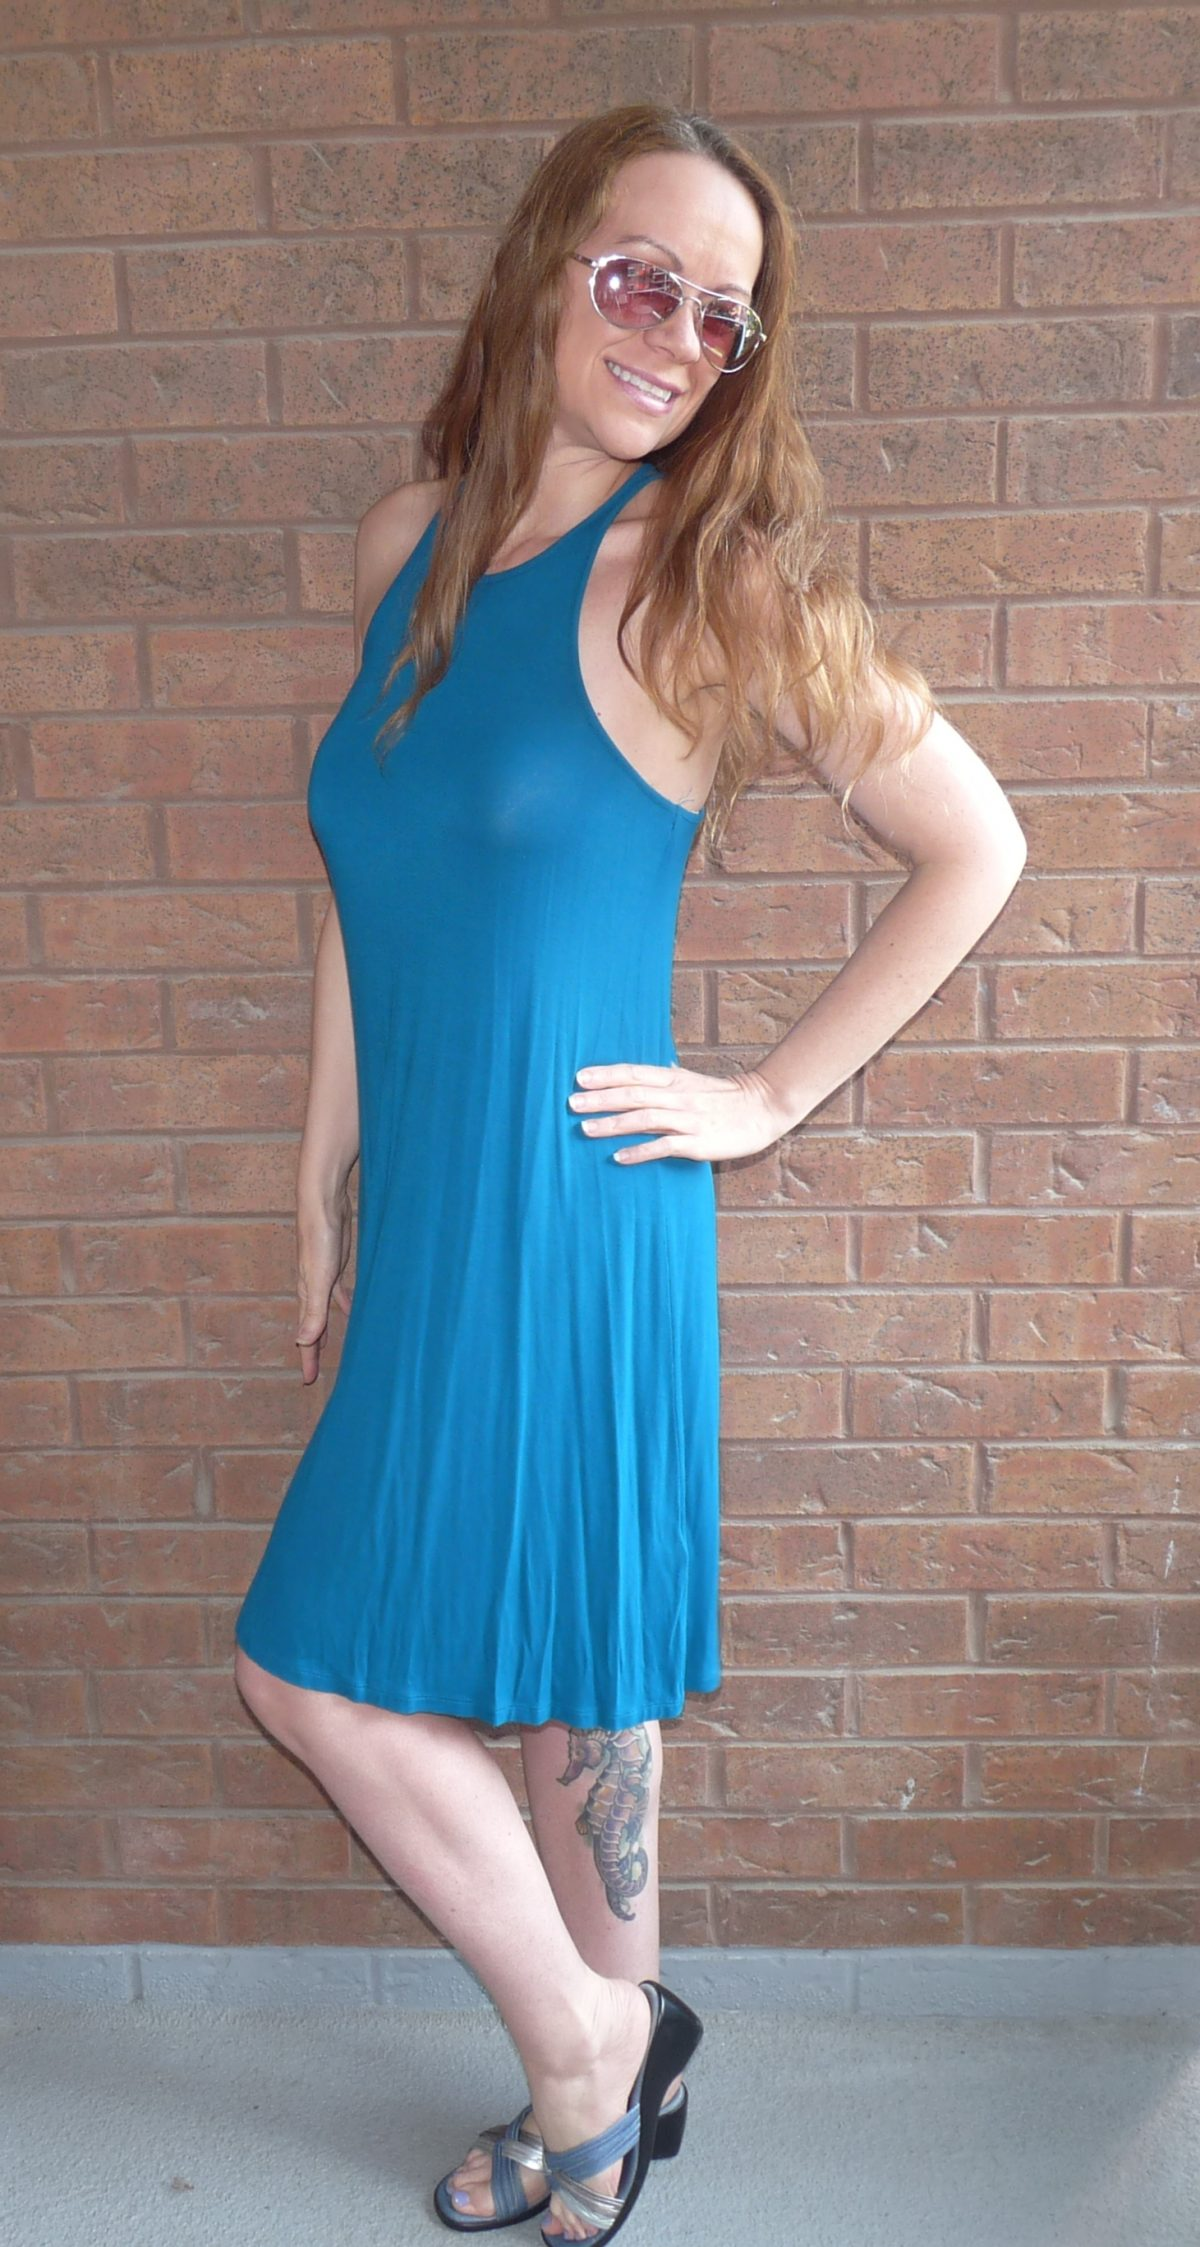 Beautiful Summer Dress Ideas You Need To Get Now!